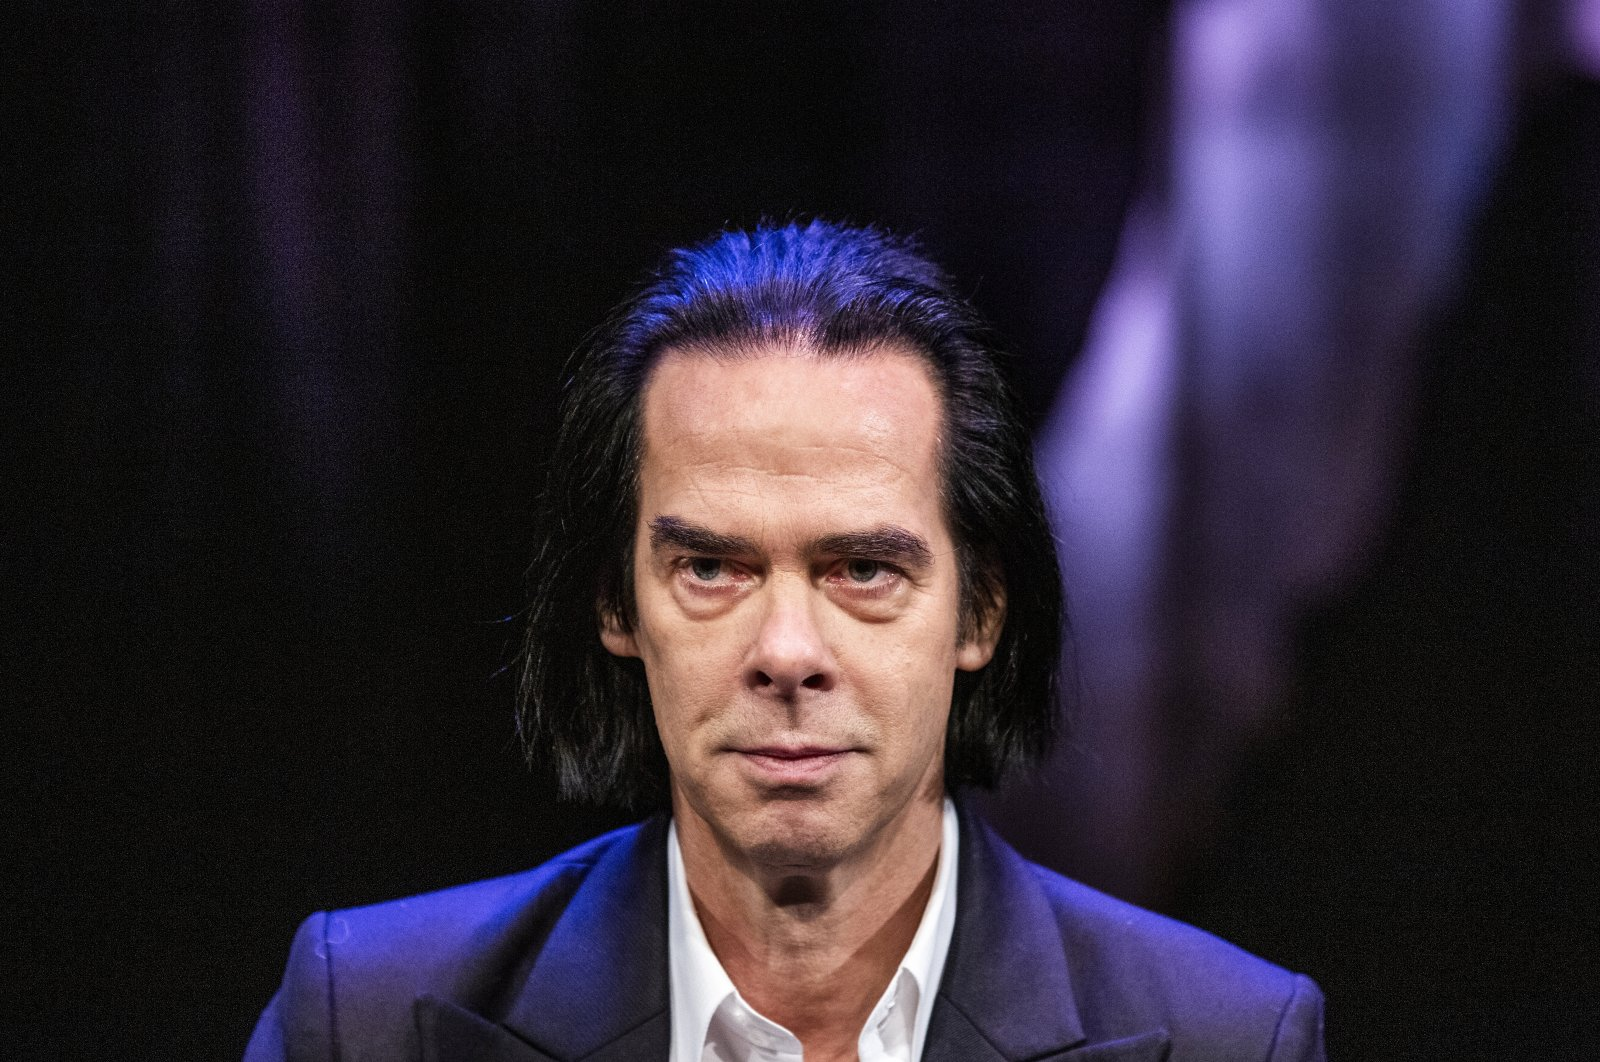 """Australian artist Nick Cave looks on during a press conference to promote his exhibition """"Stranger Than Kindness"""" in Copenhagen, Denmark, Nov. 2, 2020. (AP Photo)"""